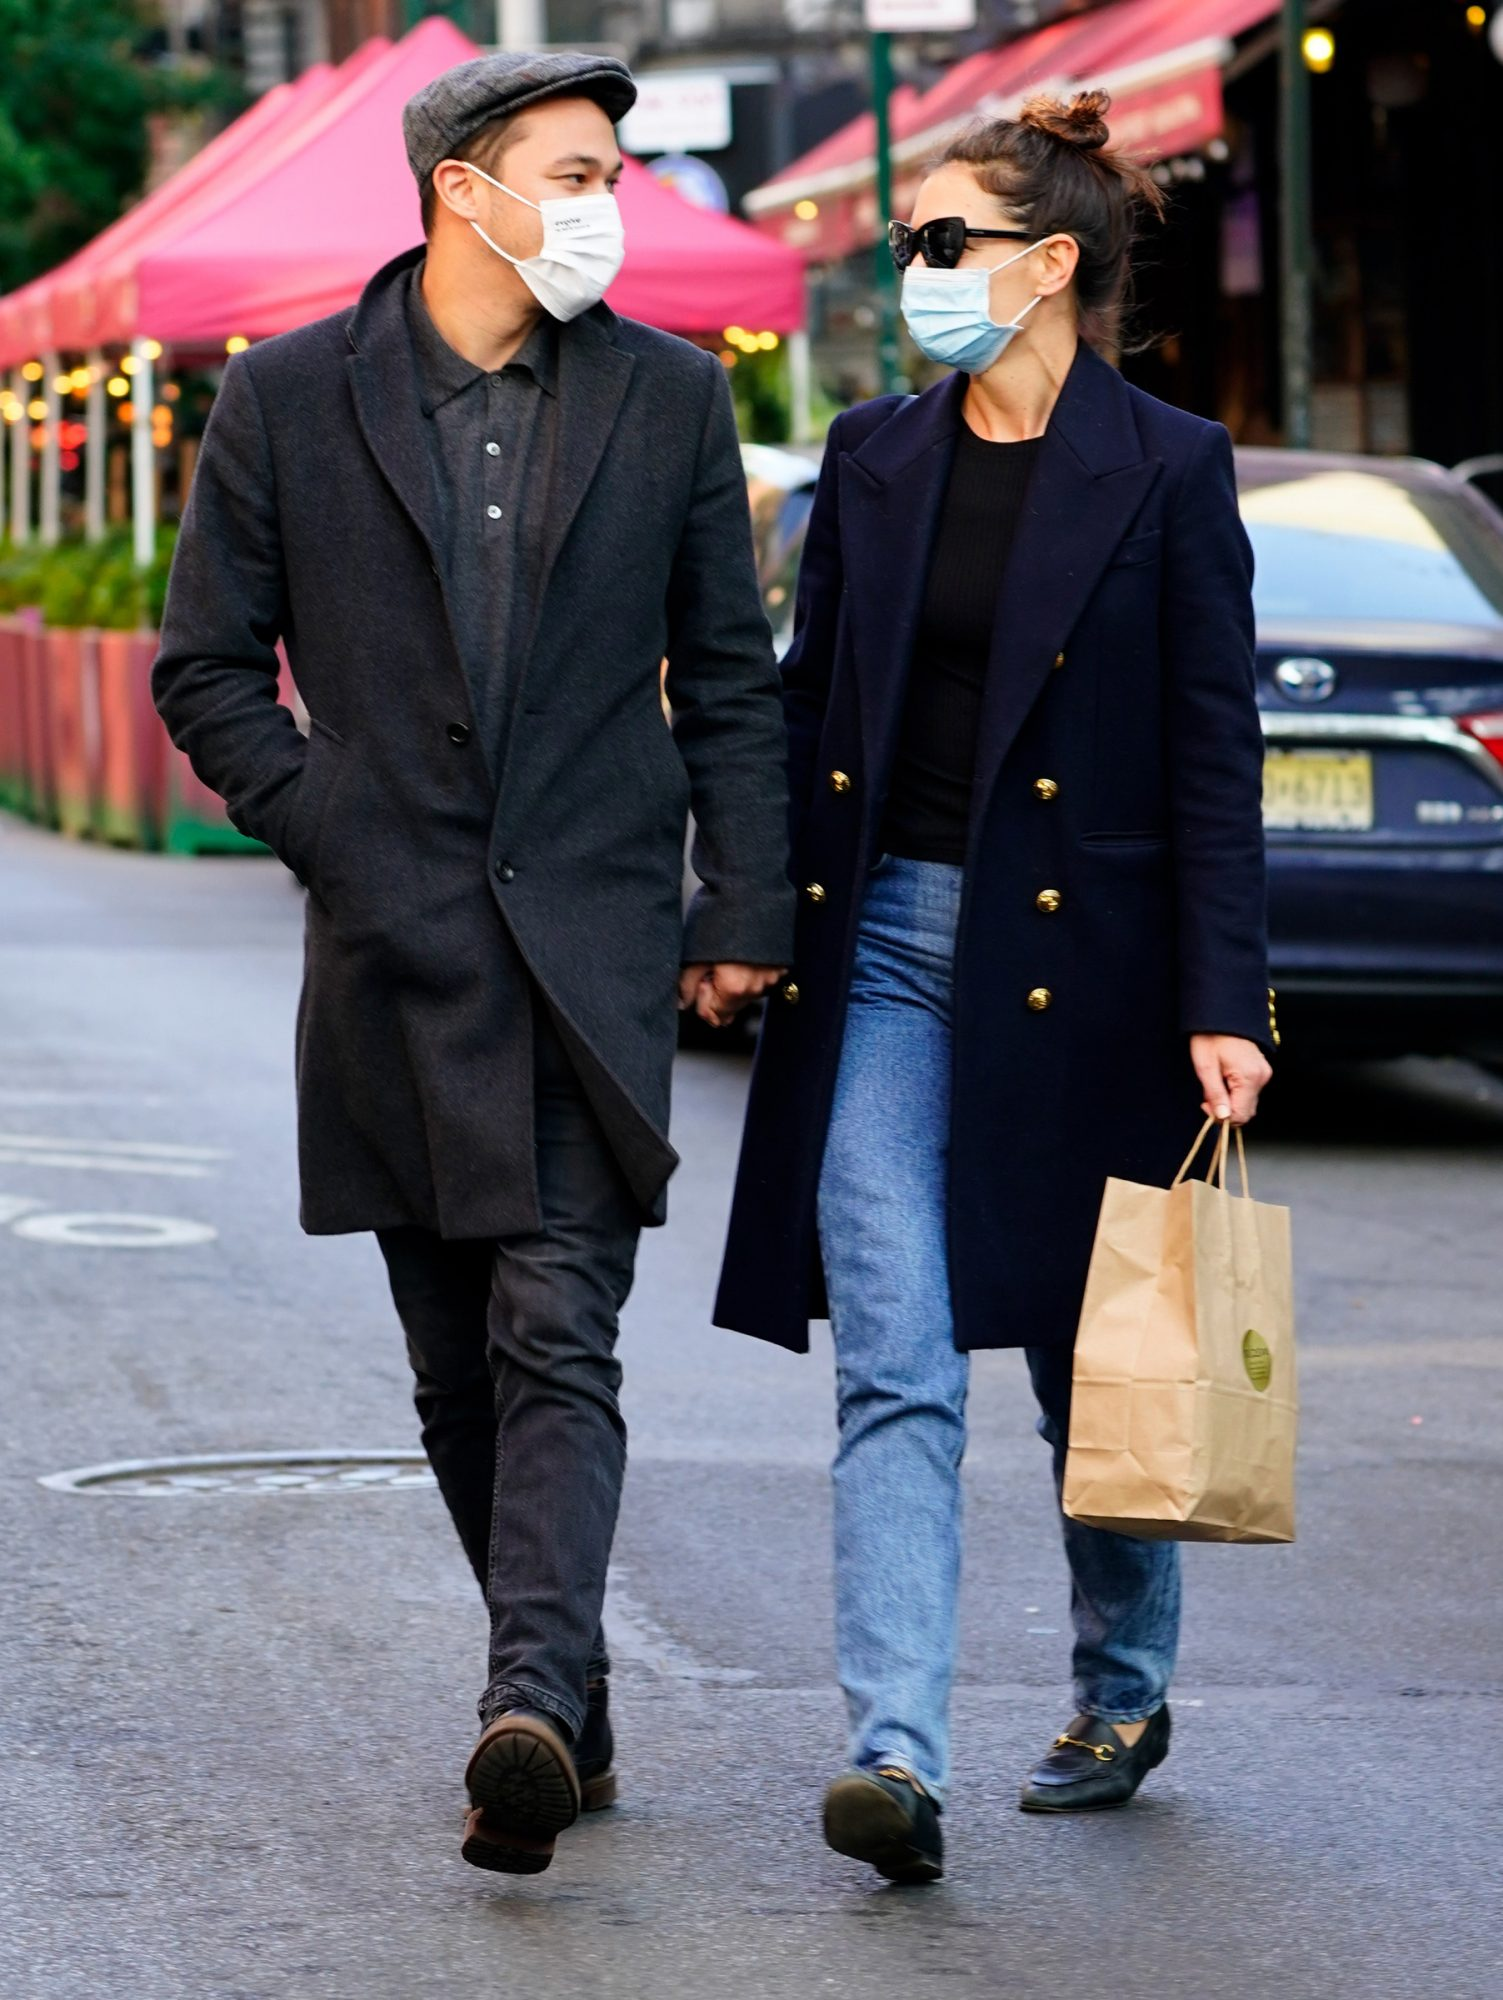 Katie Holmes (R) and Emilio Vitolo Jr. are seen on September 22, 2020 in New York City